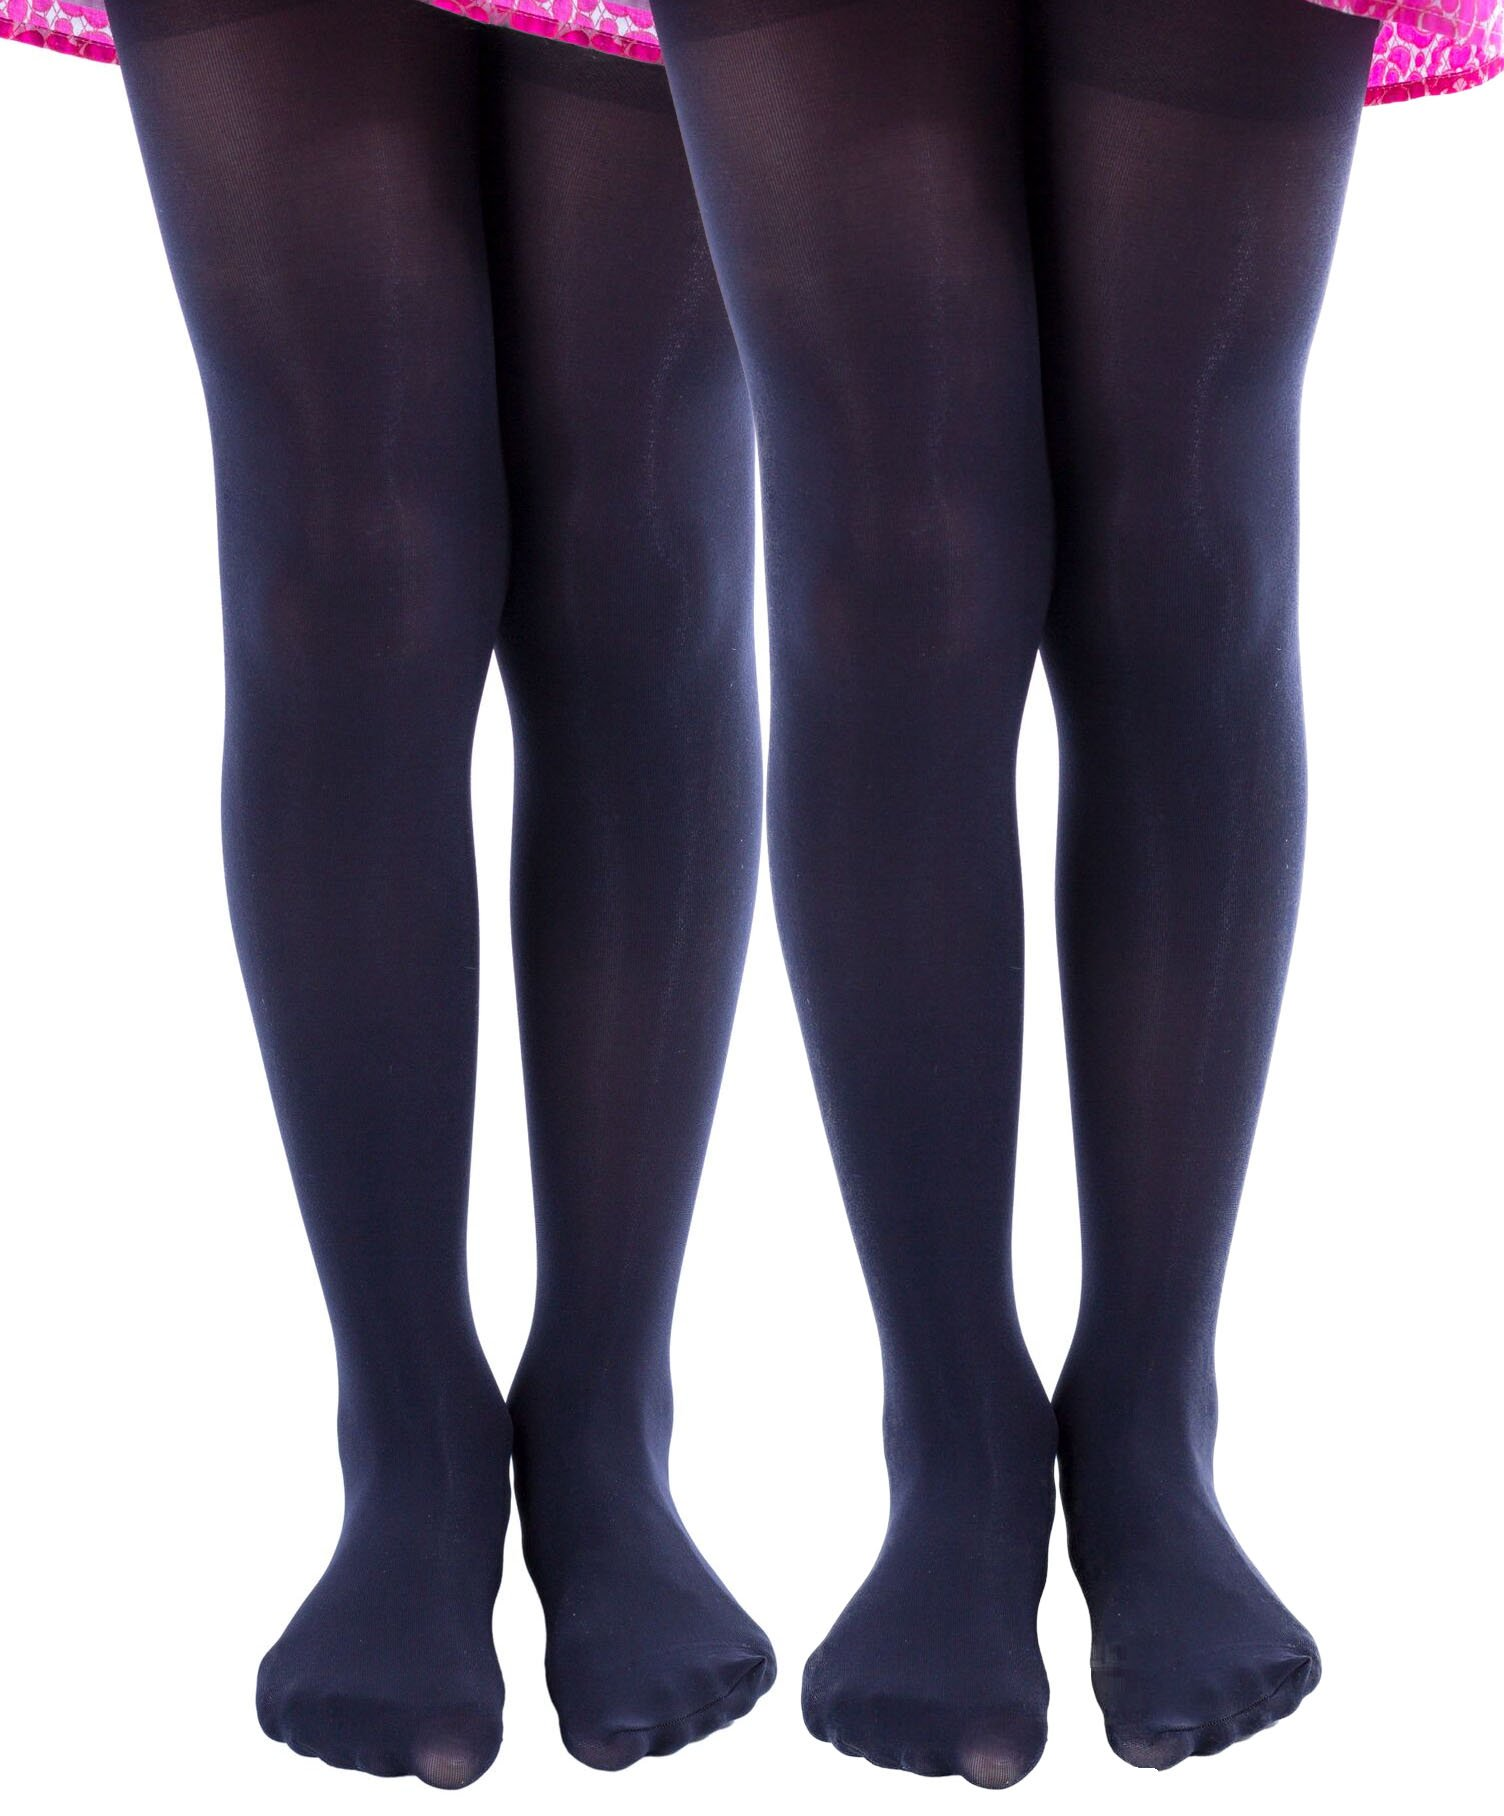 2 Pairs of Mod & Tone Girls Microfiber Opaque Tights